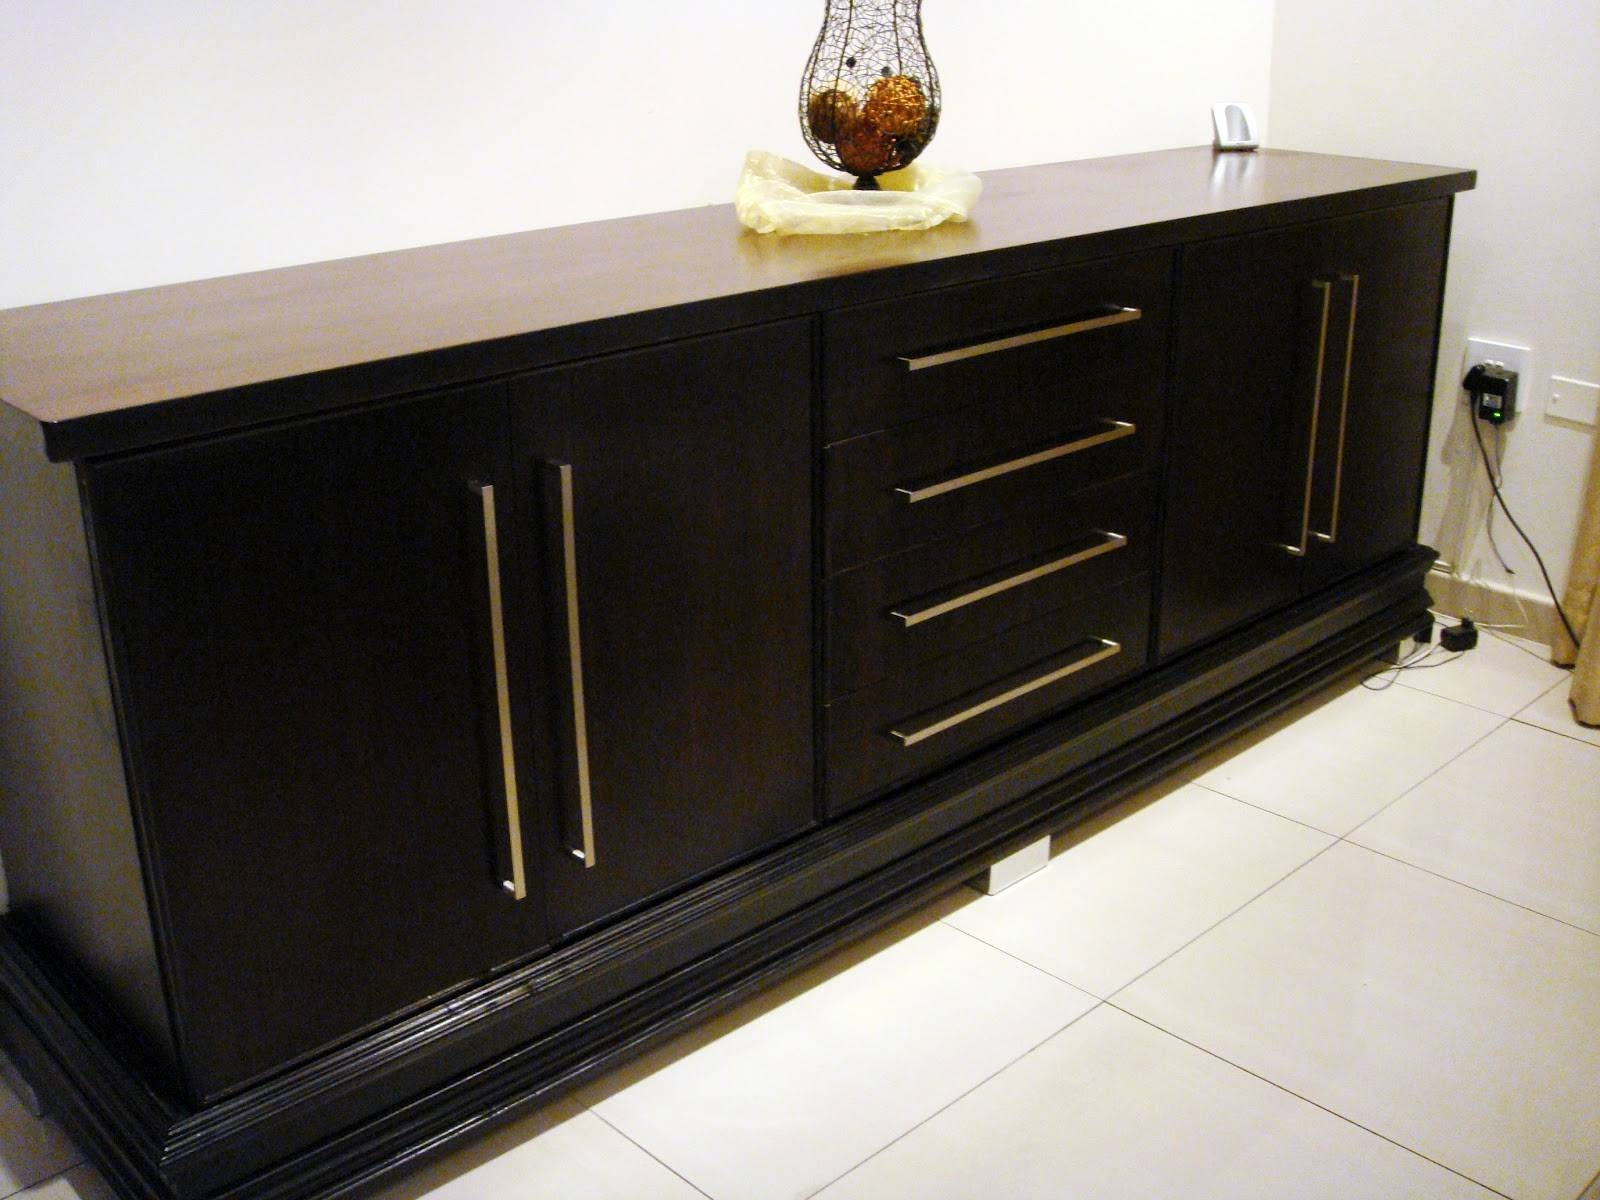 Dining Room Bar Sideboard | Latest Home Decor And Design Throughout 2017 Black Dining Room Sideboards (View 13 of 15)